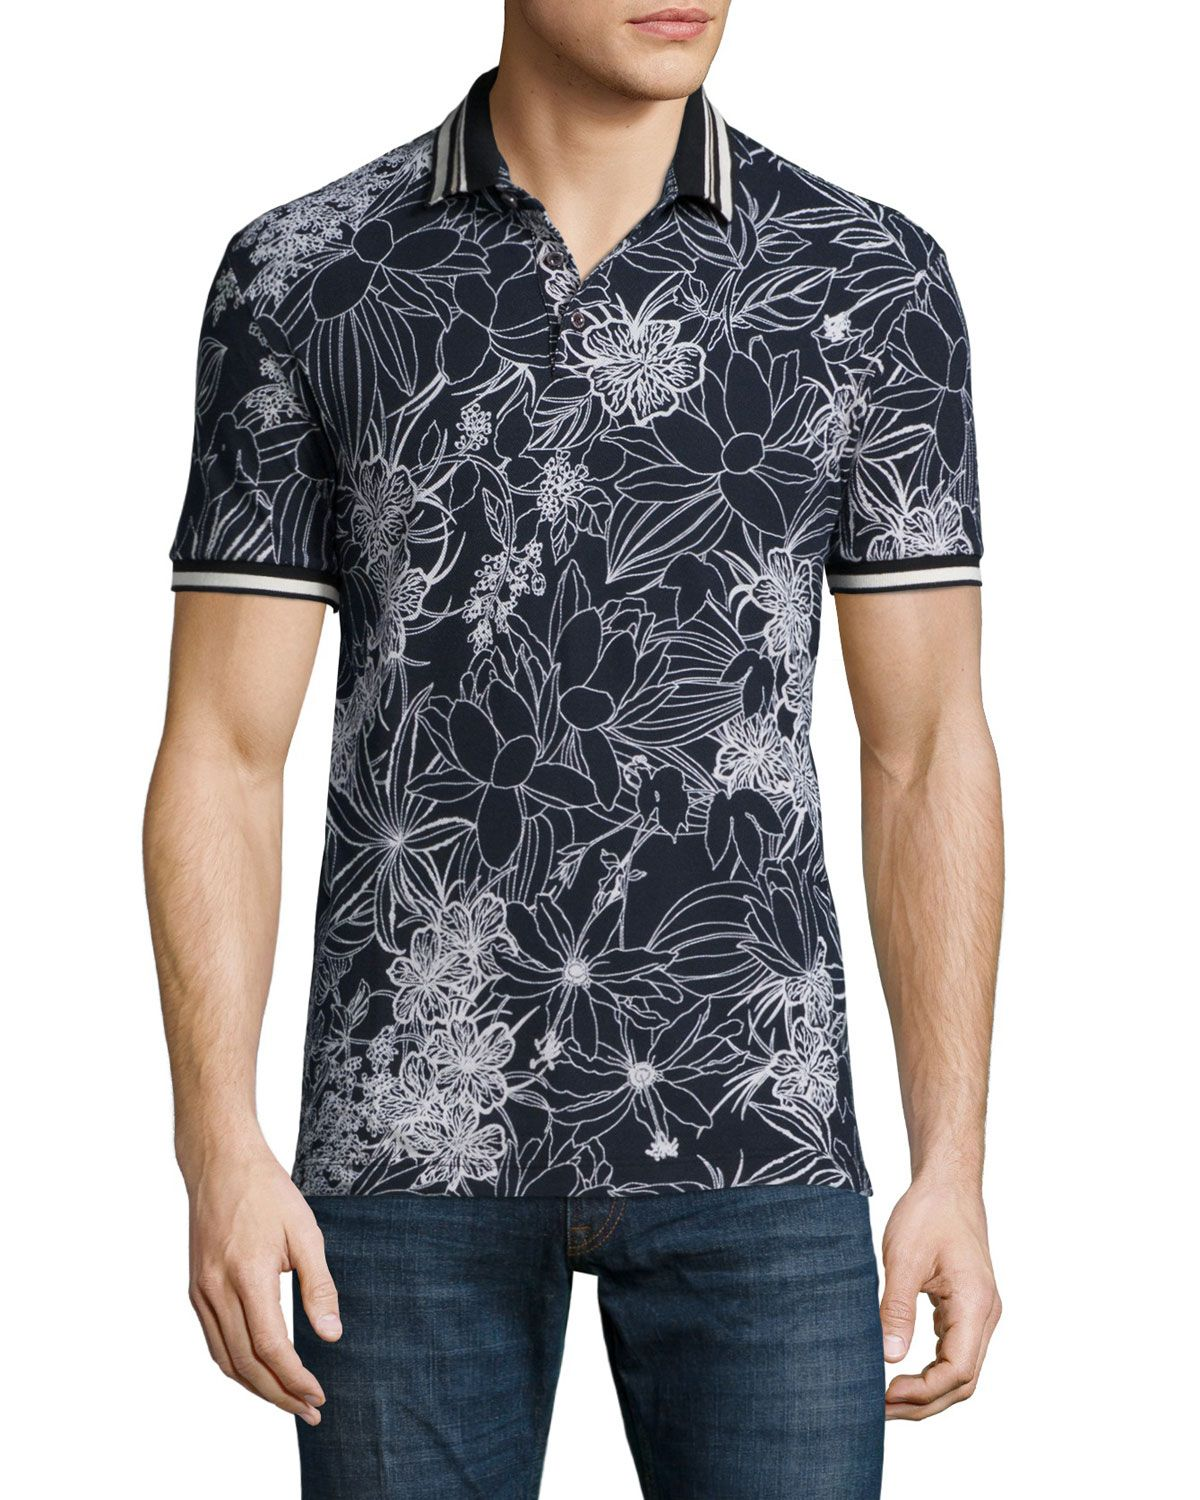 Floral-Print Short-Sleeve Pique Polo Shirt 3490bdbbf965d